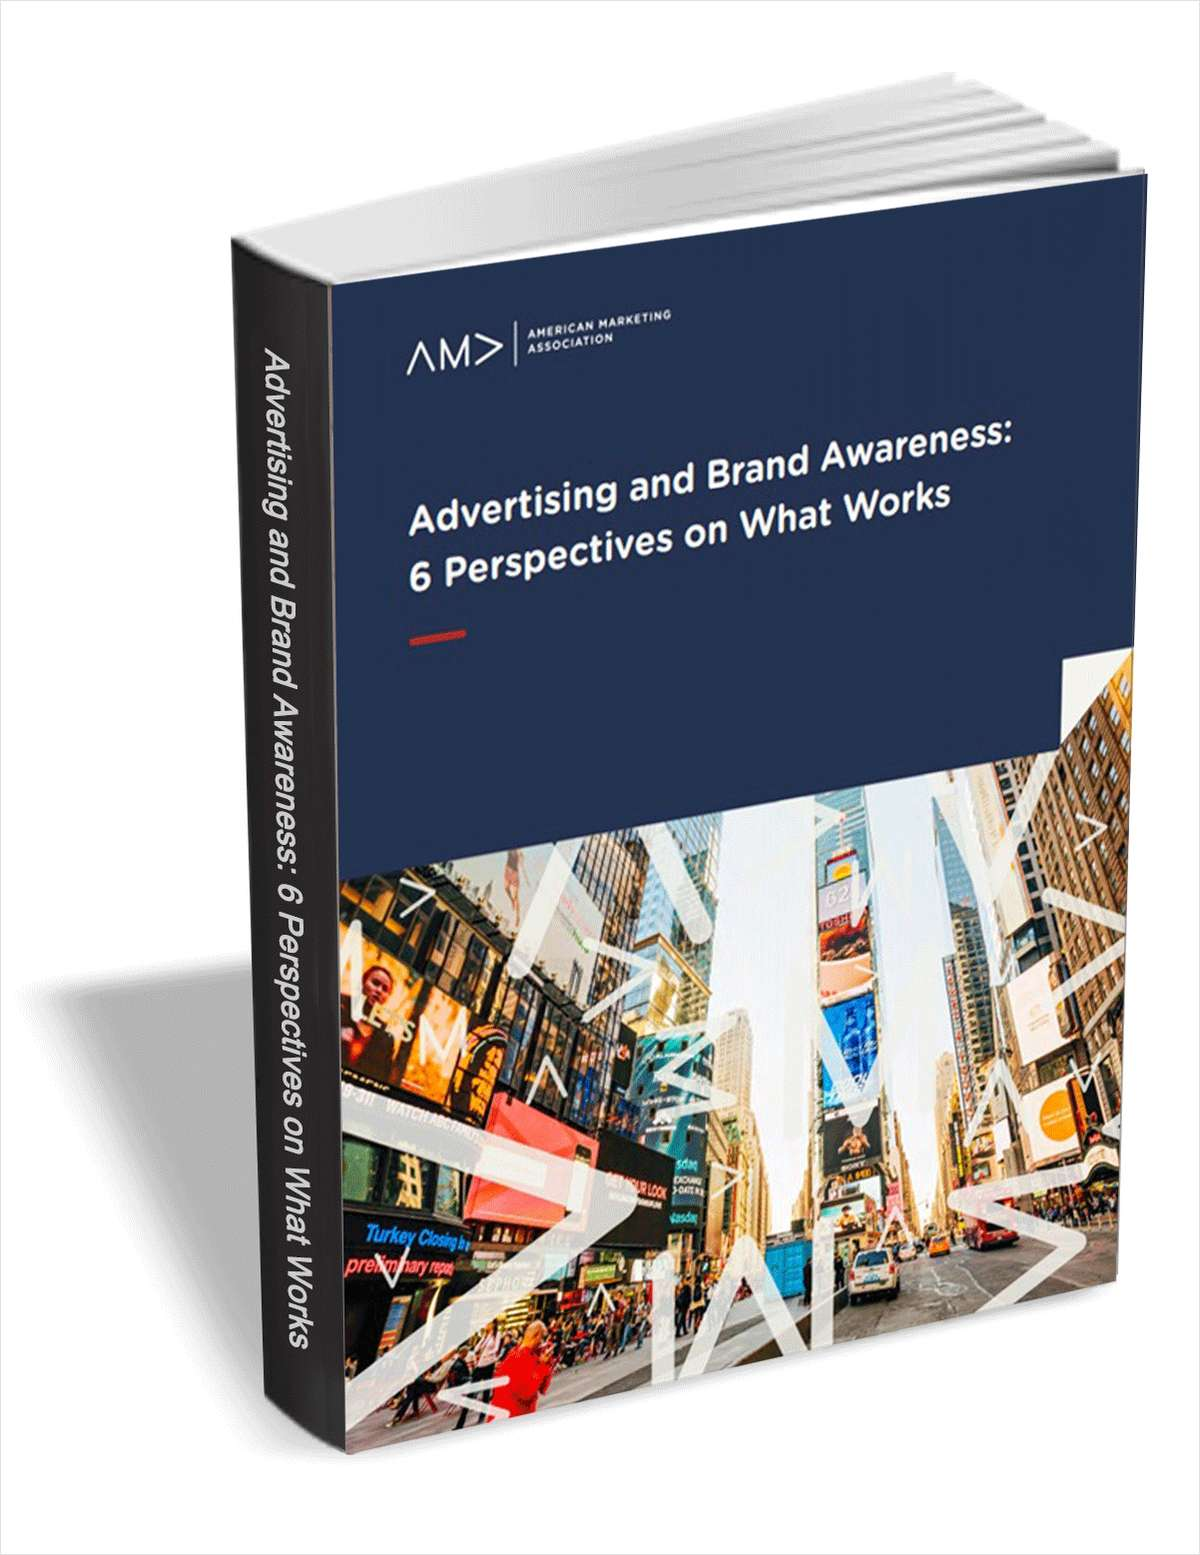 Advertising and Brand Awareness - 6 Perspectives on What Works